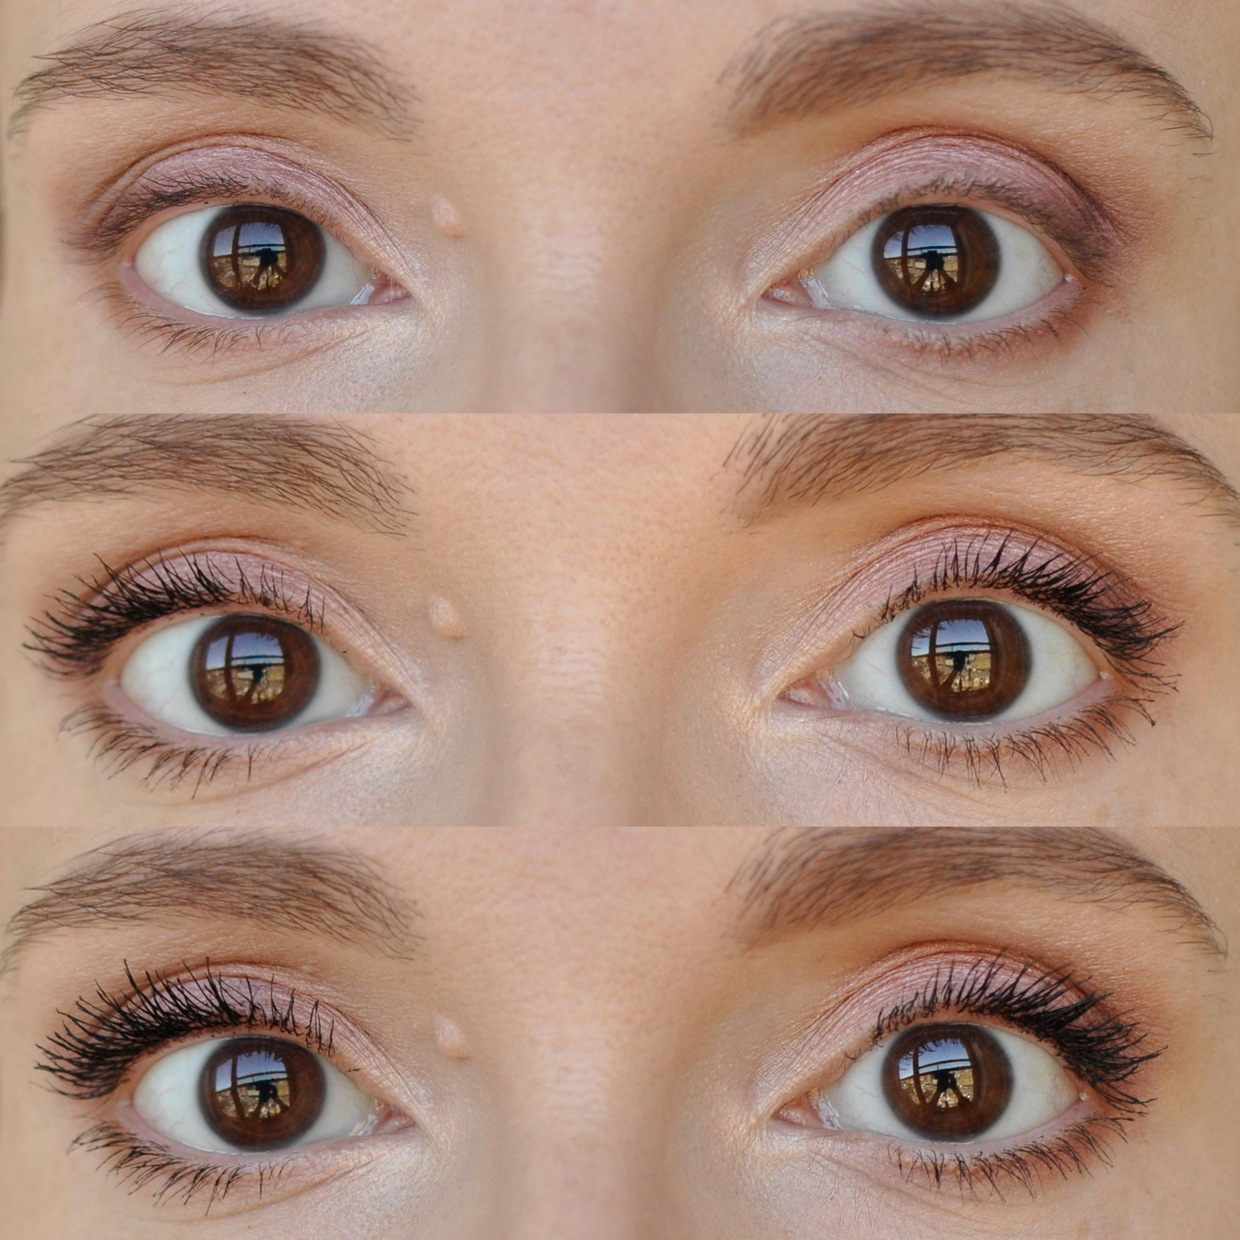 5d47c003b60 At two coats, my lashes start to look a bit more dramatic, but still not  overloaded with product or over the top for daytime - two coats is actually  my ...